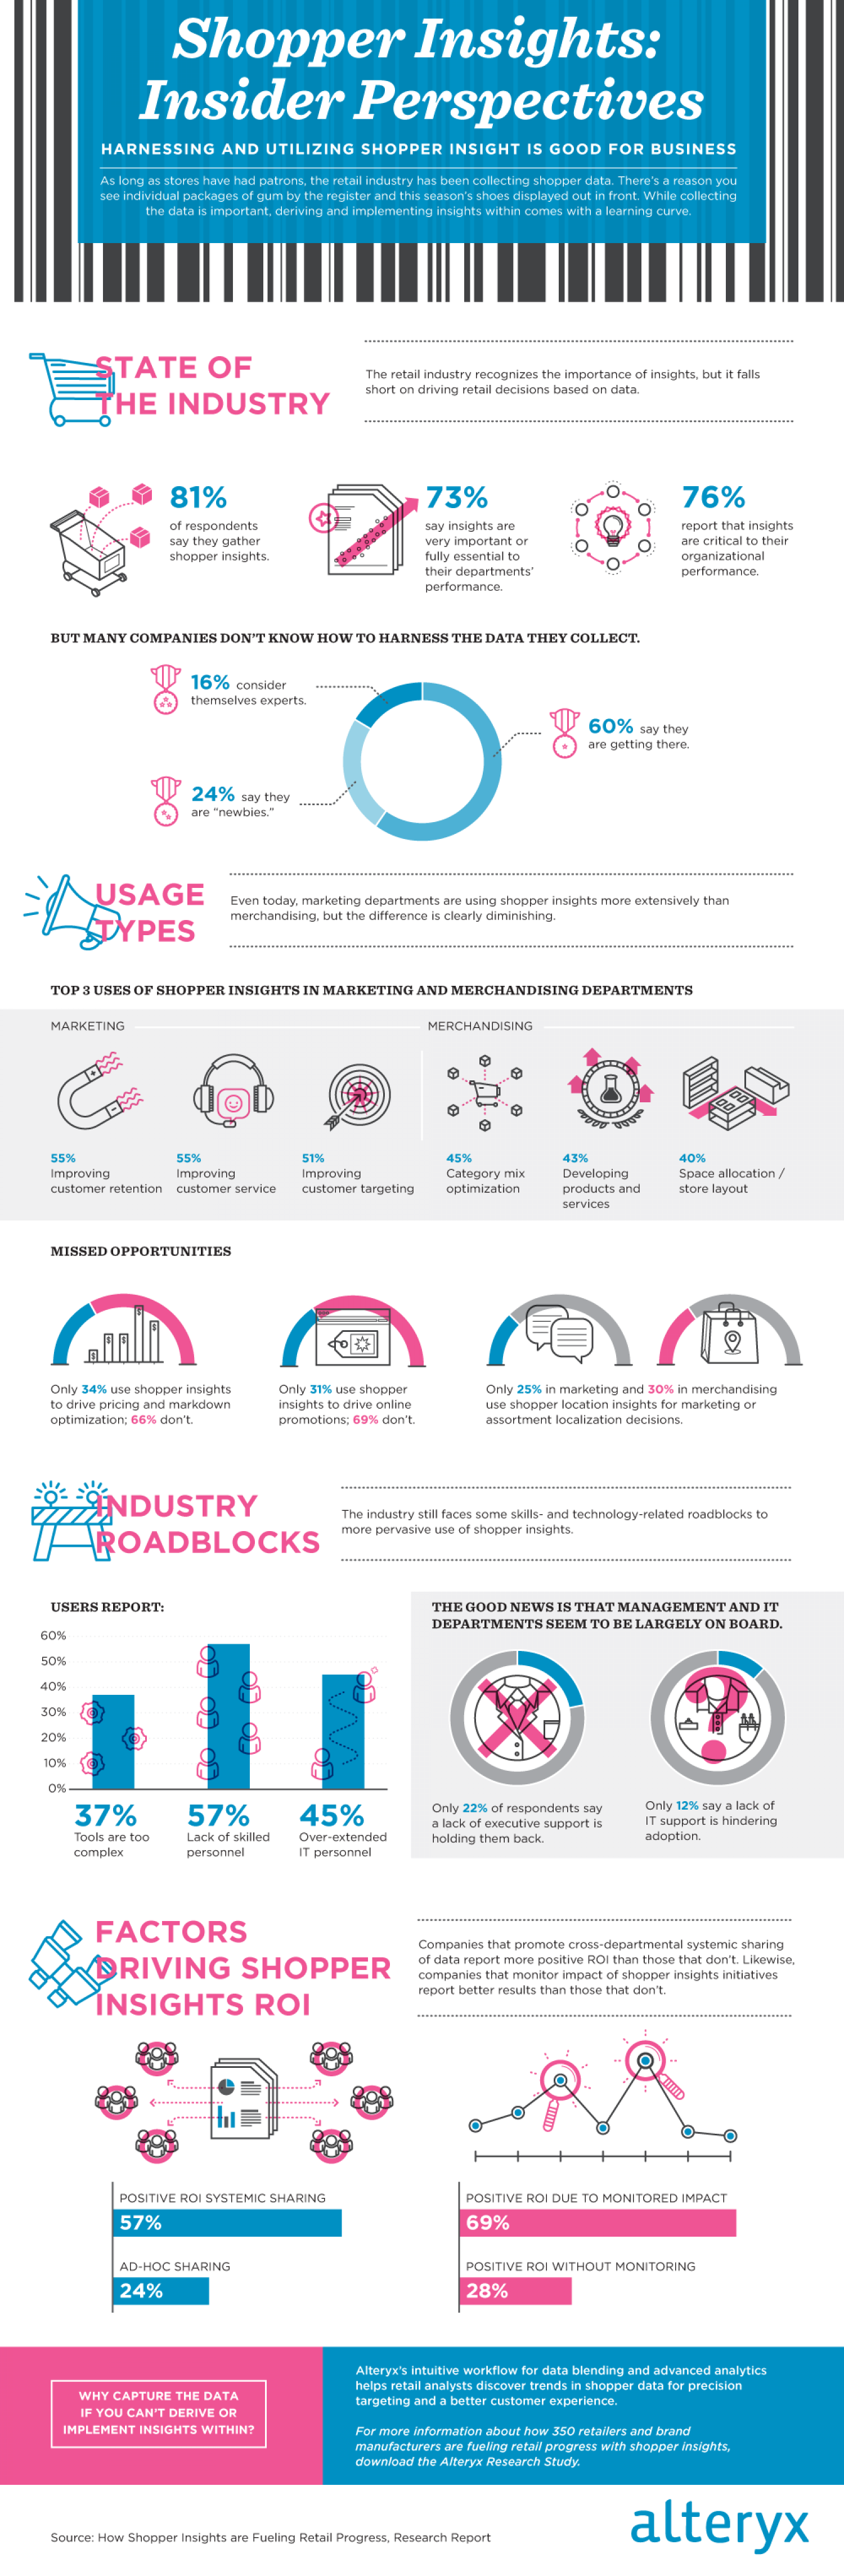 Shopper Insights: Insider Perspectives Infographic